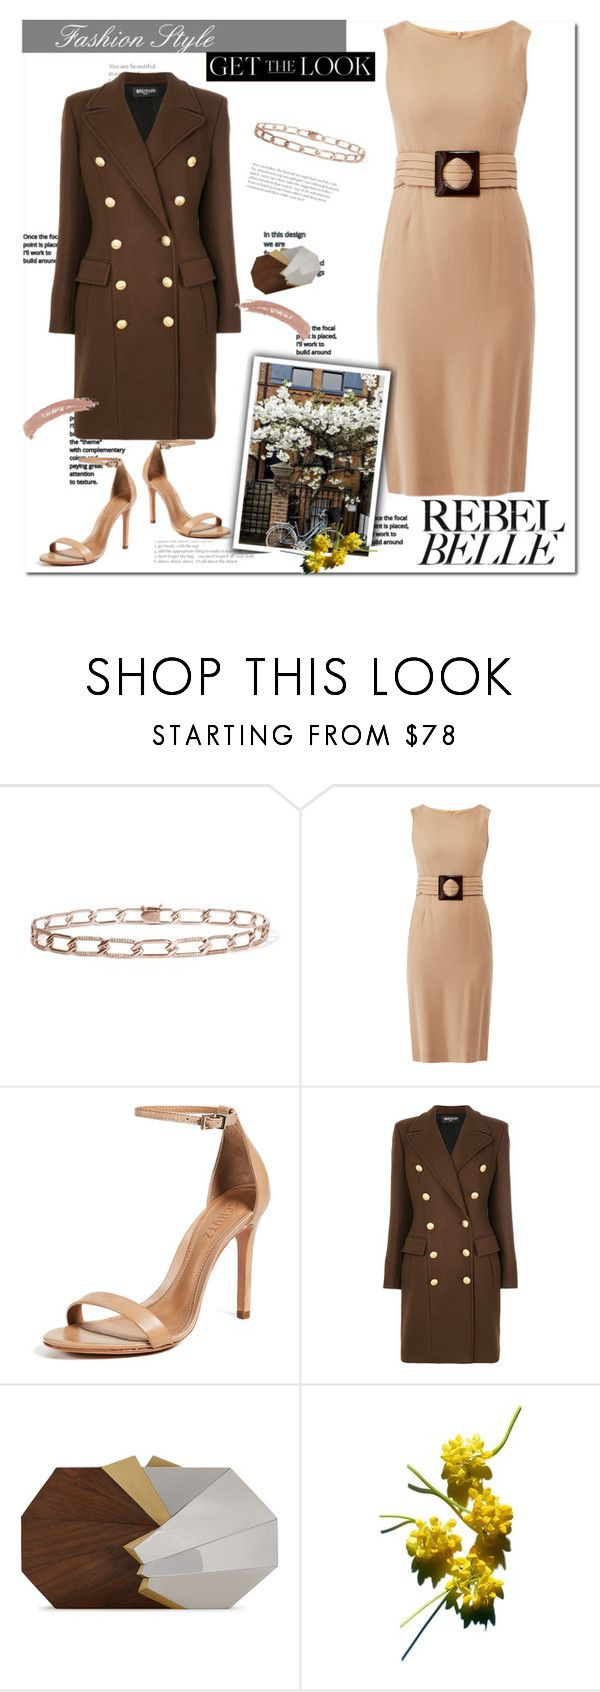 """Untitled #12053"" by queenrachietemplateaddict ❤ liked on Polyvore featuring Goat, Schutz, Balmain, Jill Haber and Topshop"